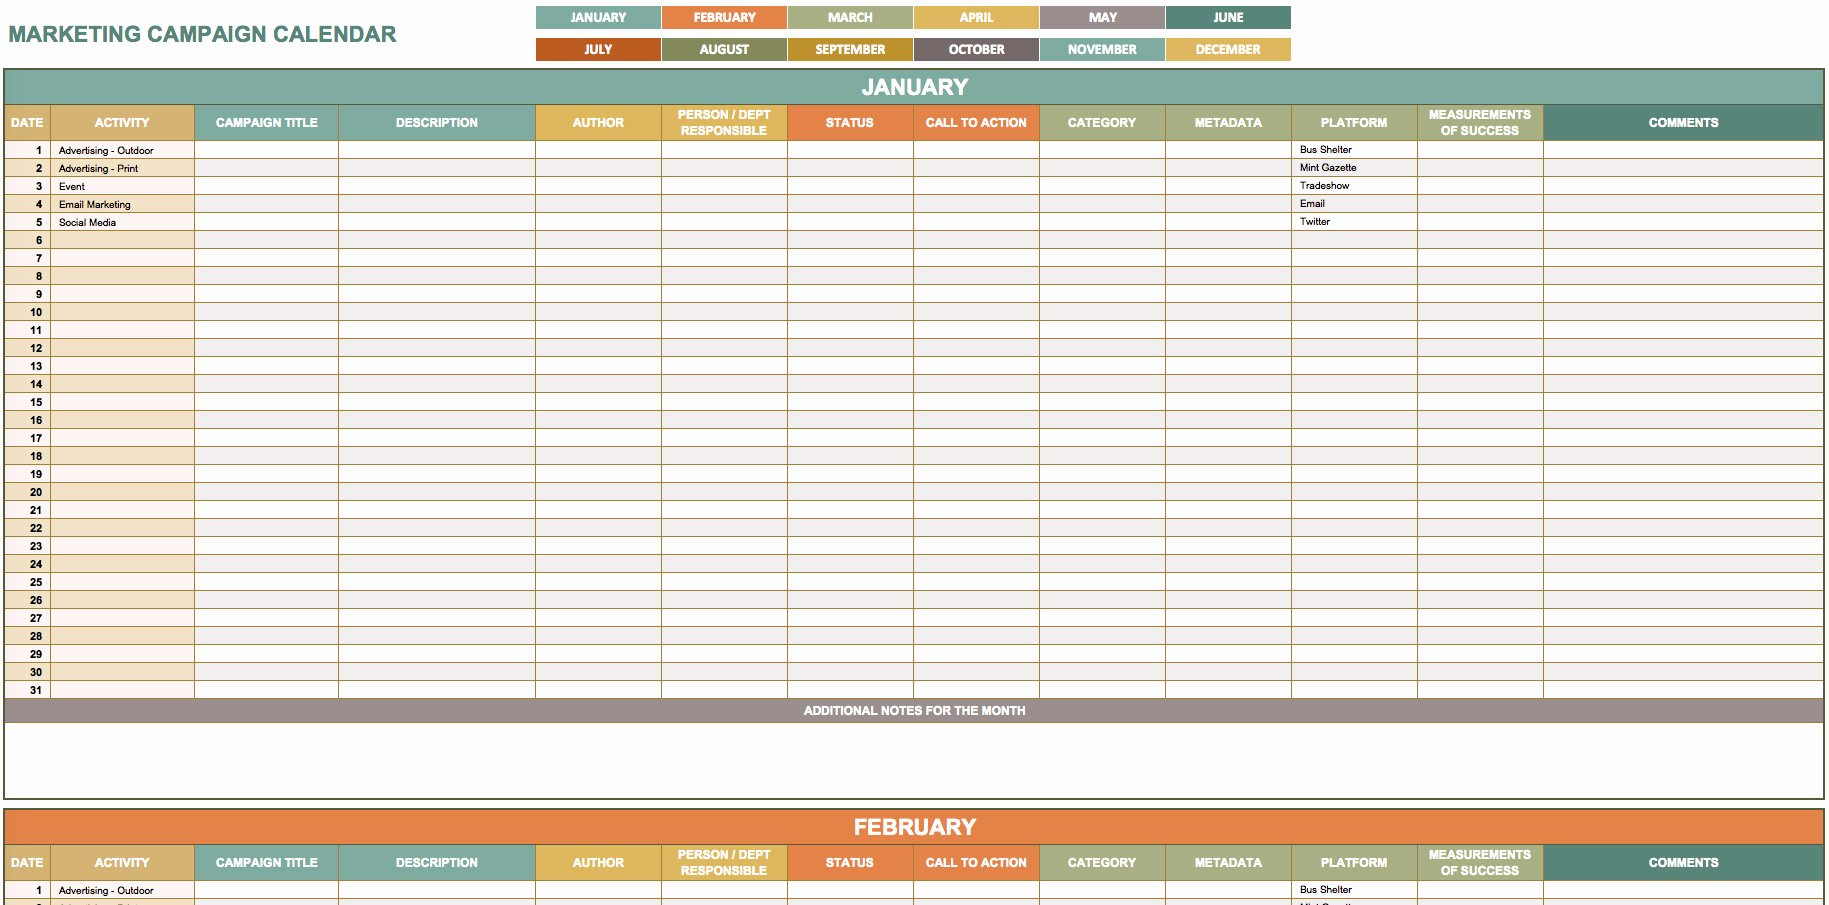 Marketing Campaign Template Excel Awesome 9 Free Marketing Calendar Templates for Excel Smartsheet